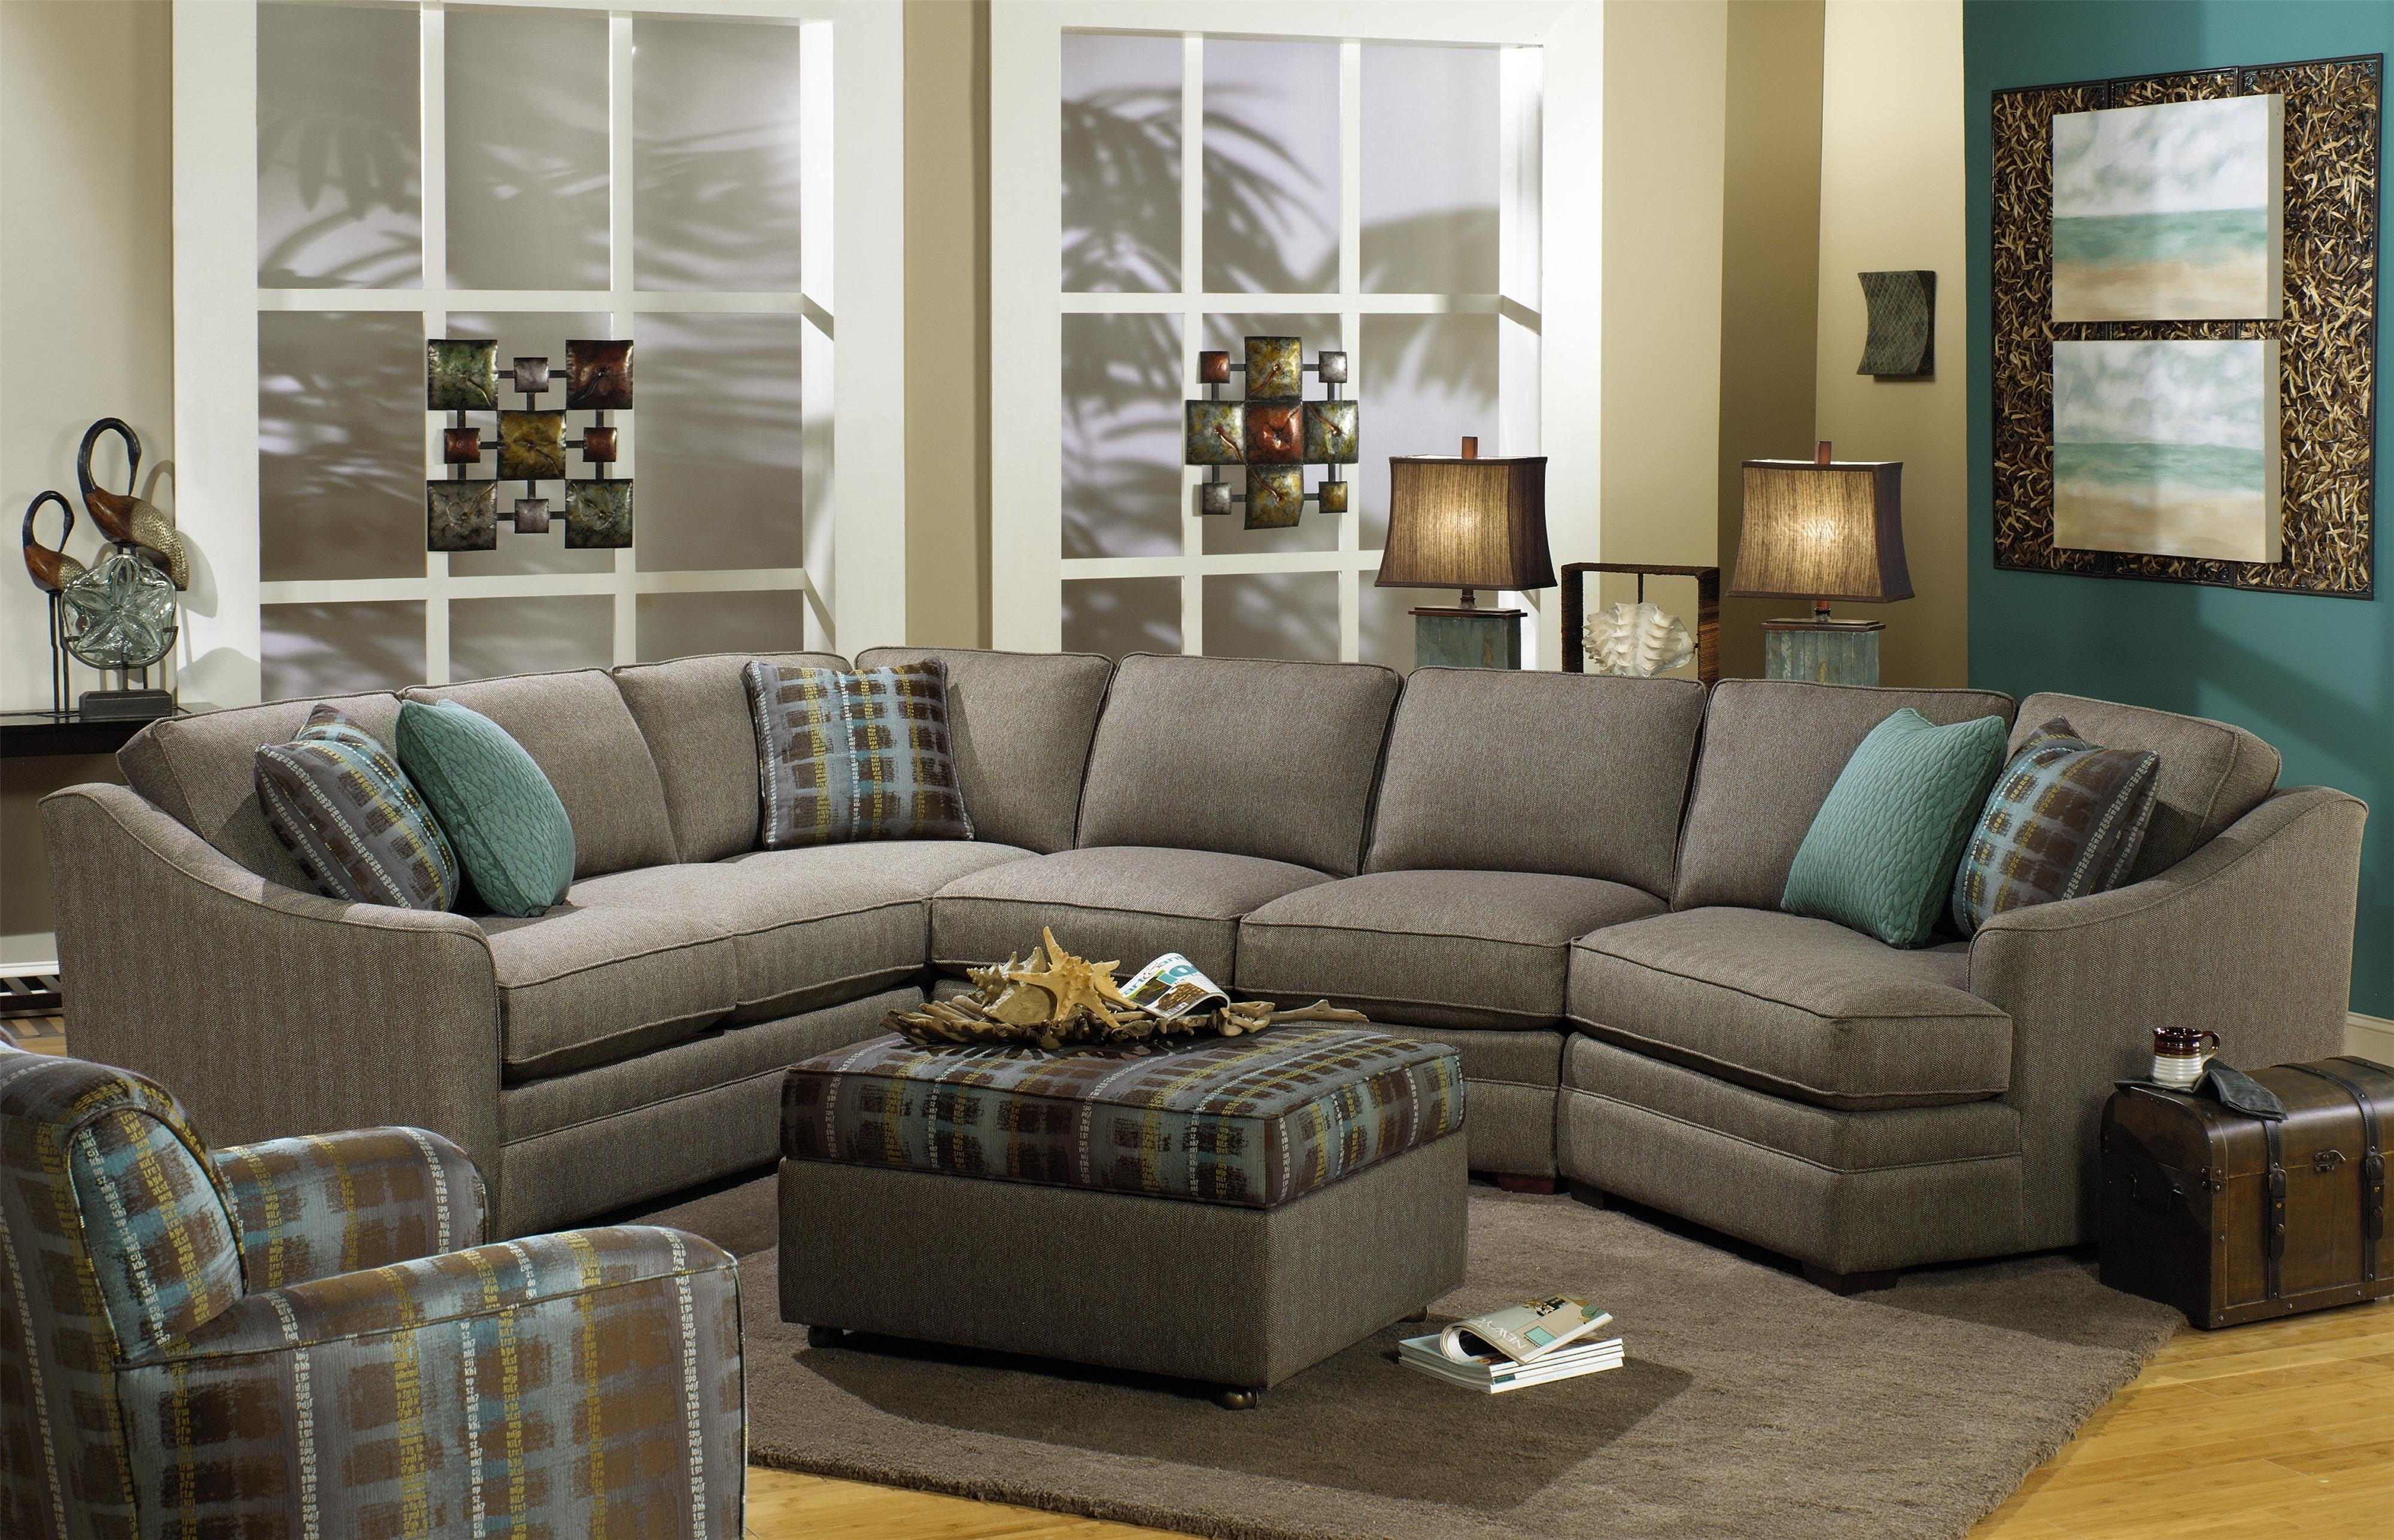 F9 Custom Collection Customizable 3-Piece Sectional With Laf Cuddler throughout Customizable Sectional Sofas (Image 7 of 15)